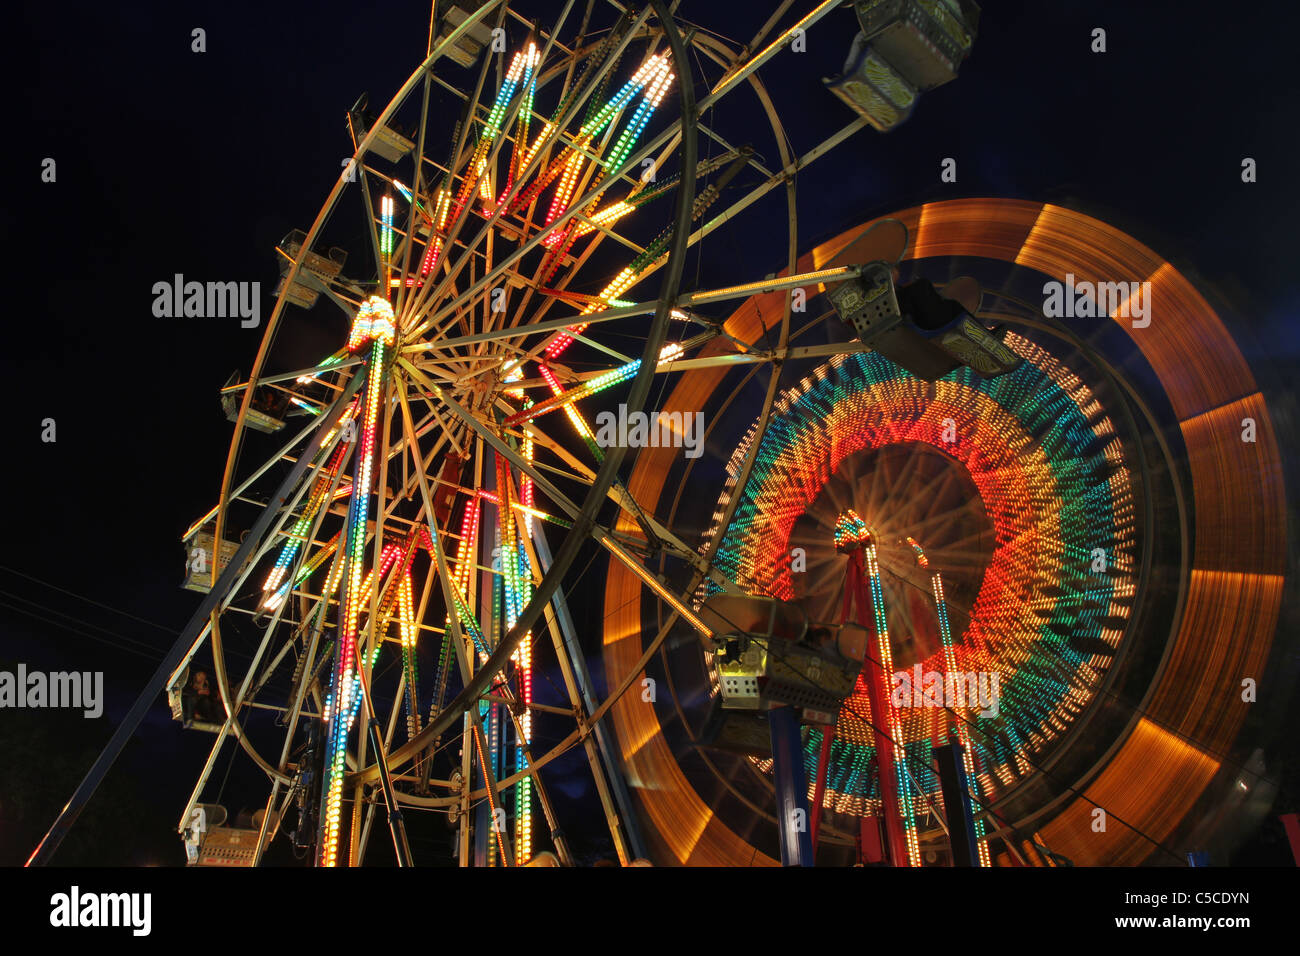 Ferris Wheels at night. Canfield Fair. Mahoning County Fair. Canfield, Ohio, USA. - Stock Image